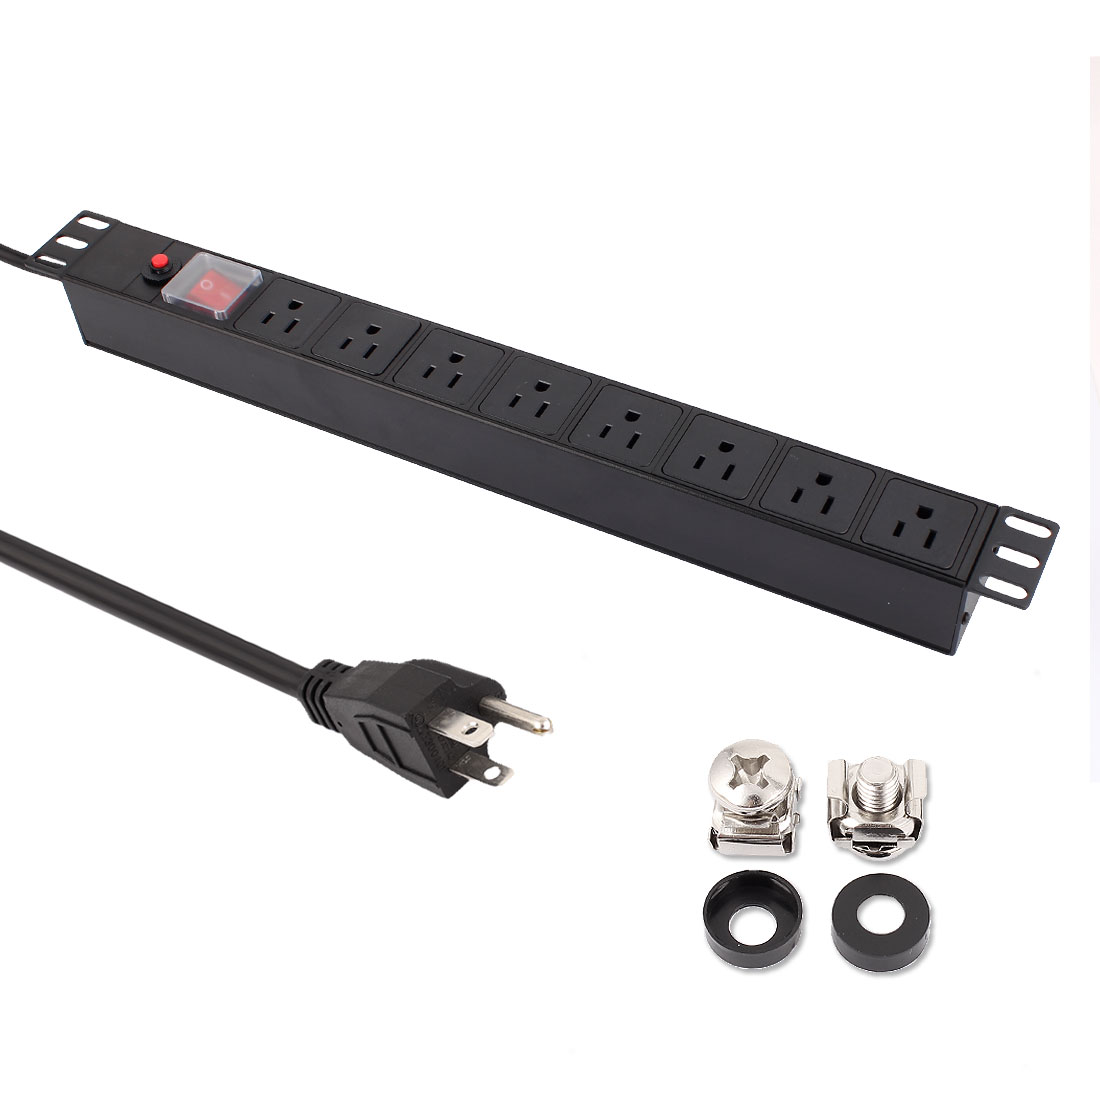 AC 110-125V US Plug Fused Extension Cable 8 US Power Socket Strip Switch PDU Power Distribution Unit